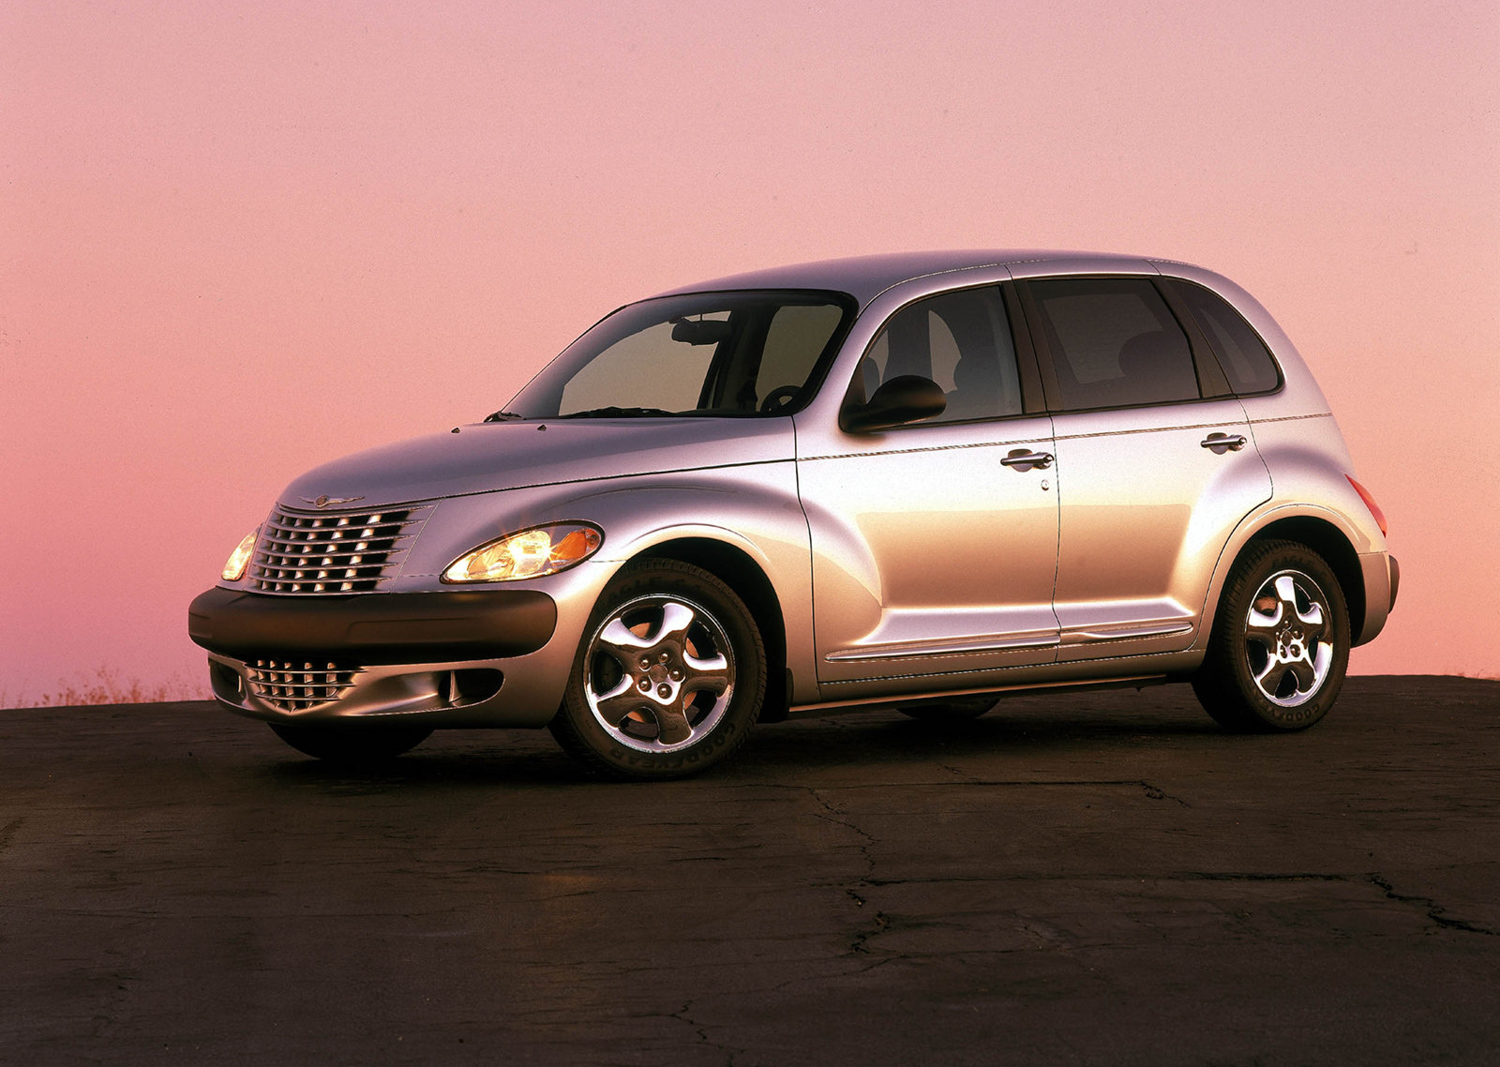 Is Chrysler's PT Cruiser the best worst car of all time?